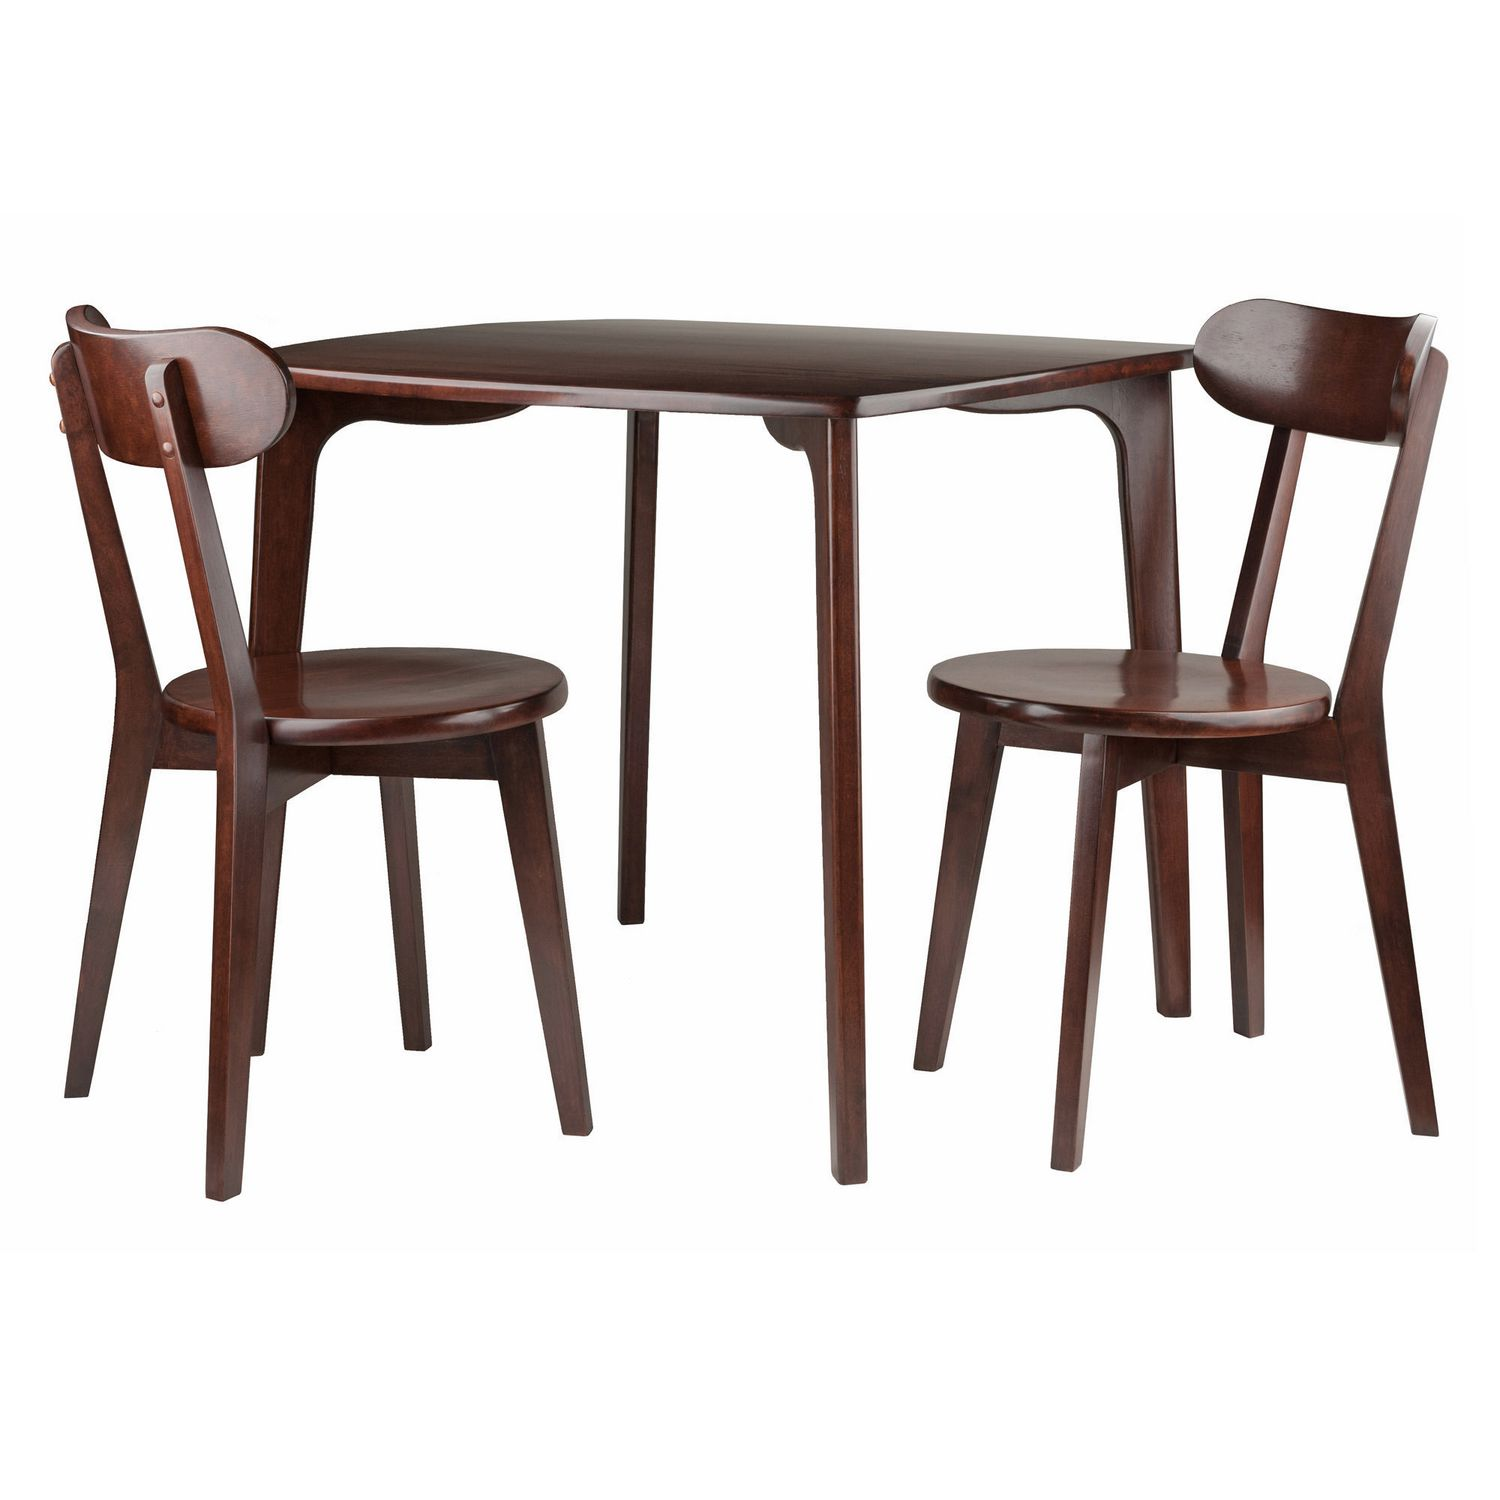 Table With 2 Chairs Pauline 3 Pc Set Dining Table With 2 Chairs